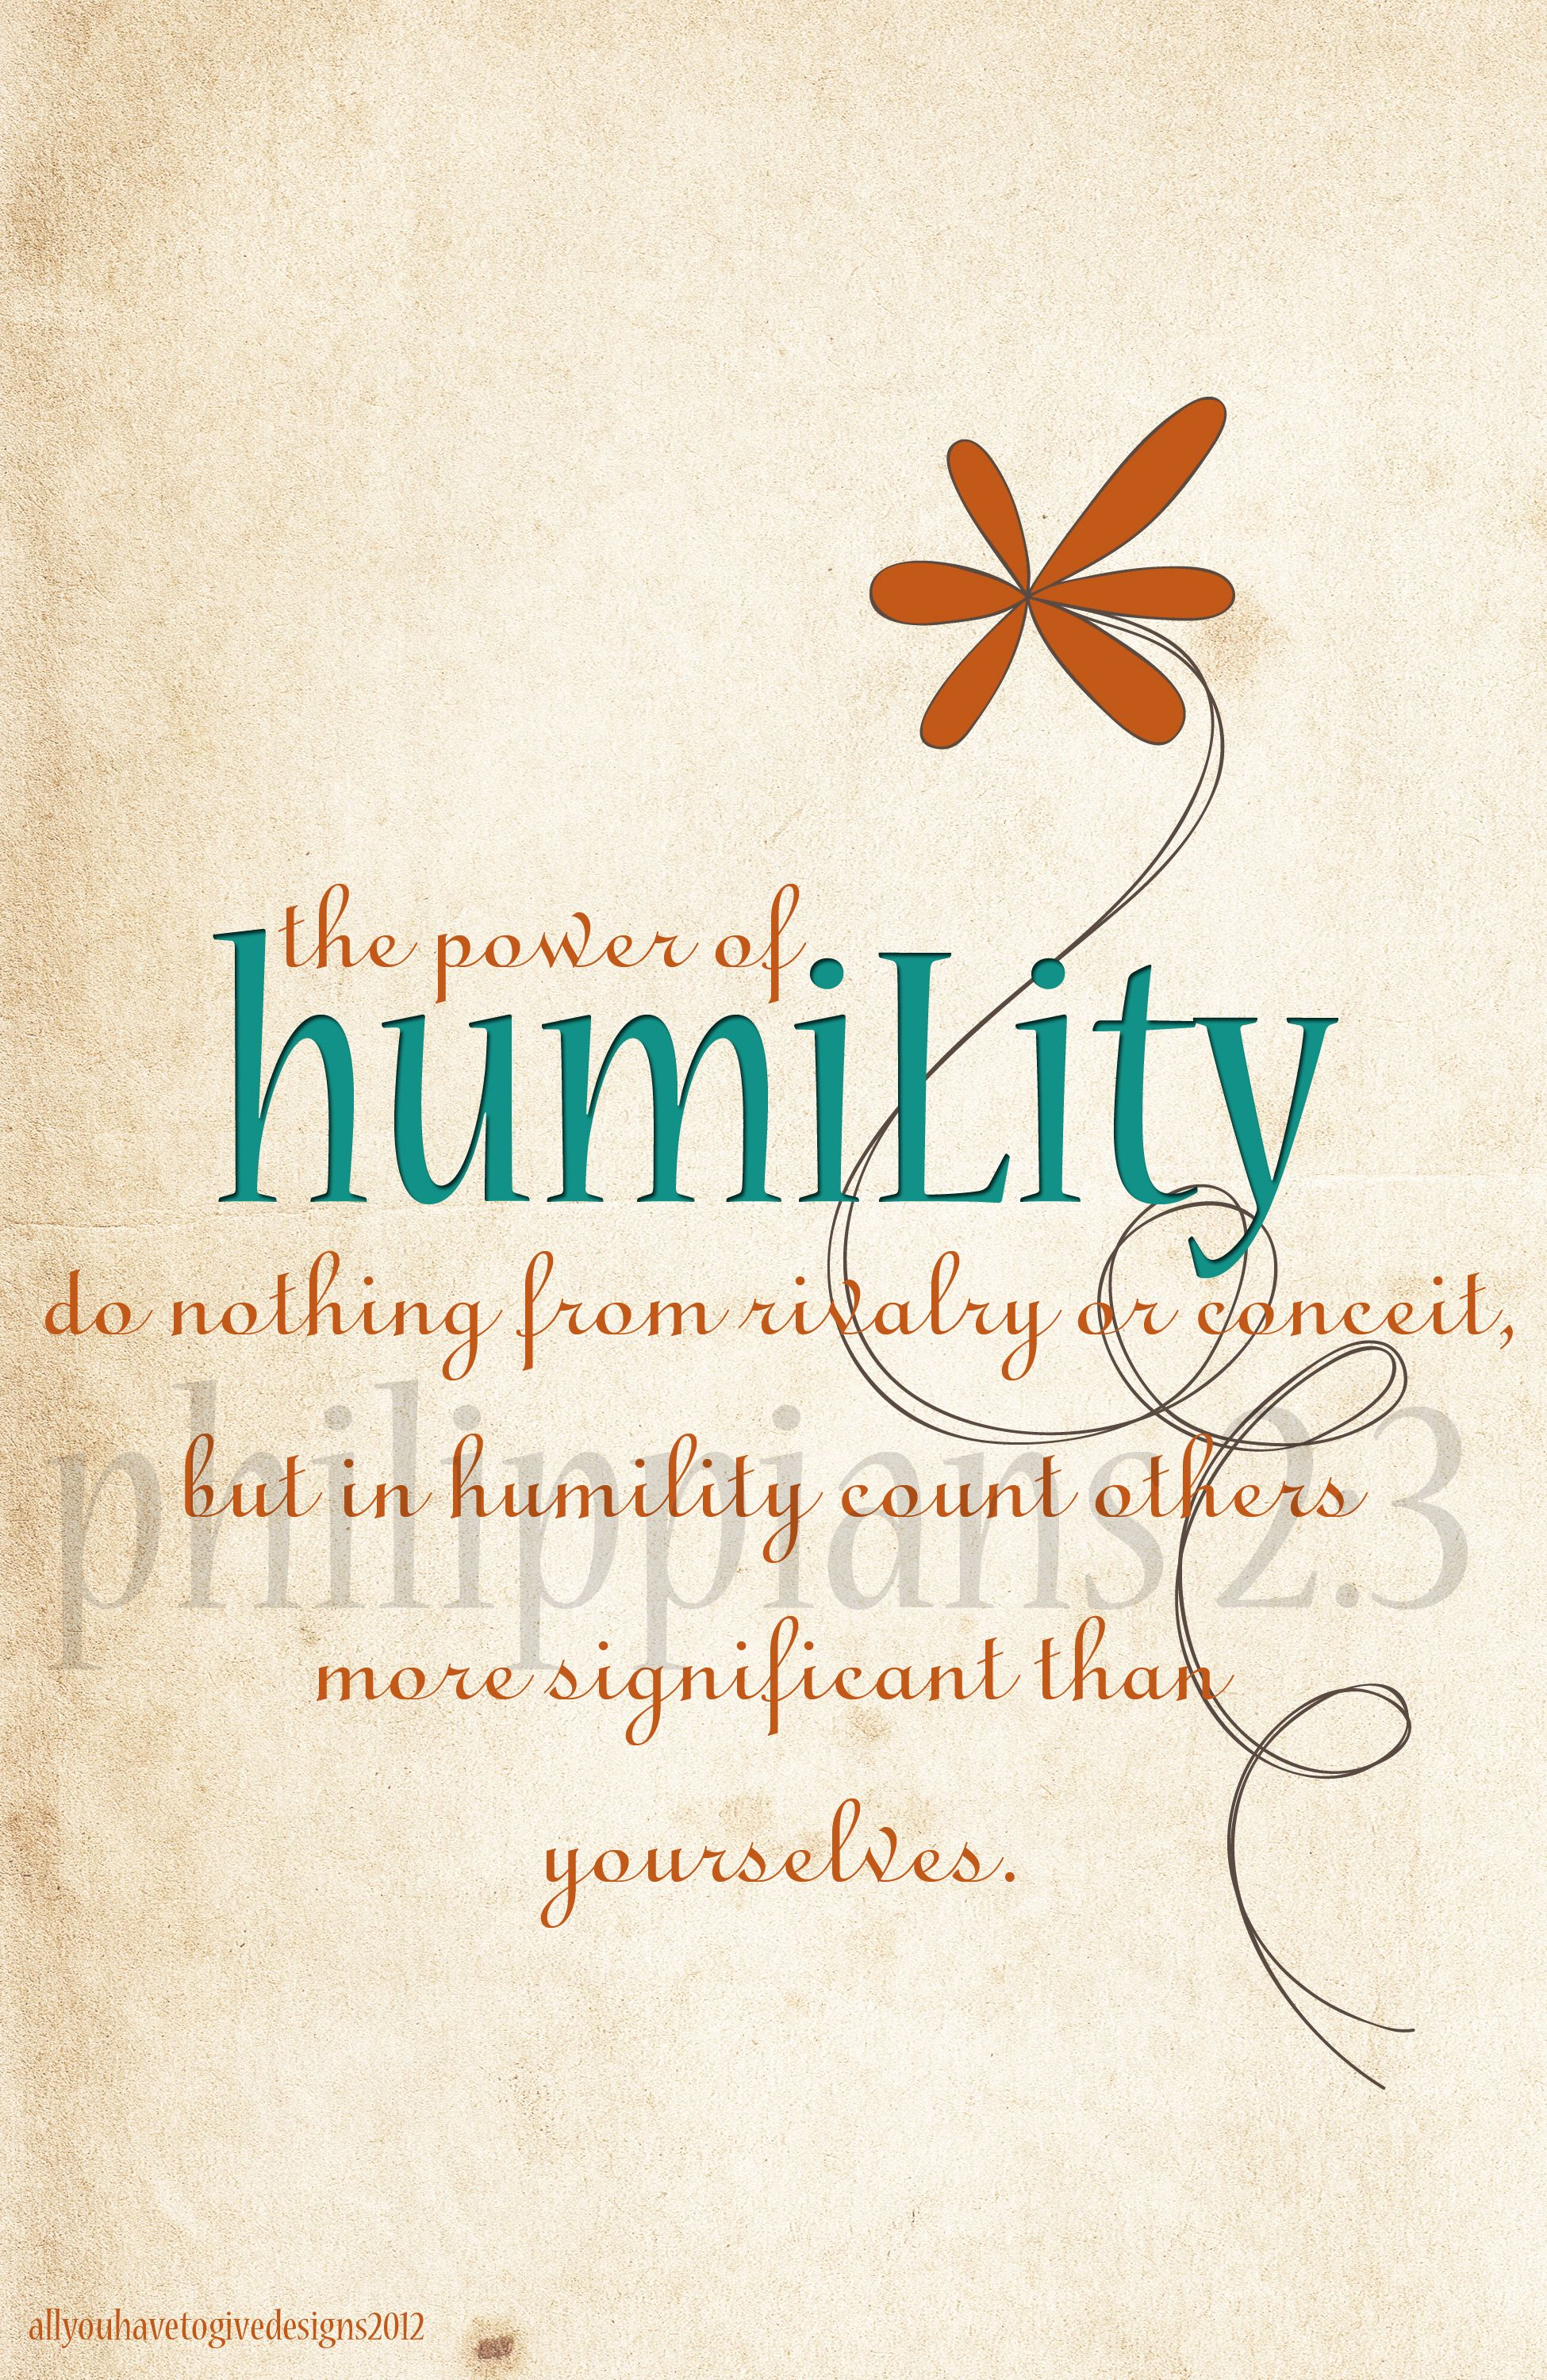 best images about pride and humility god the 17 best images about pride and humility god the pitcher and joyce meyer